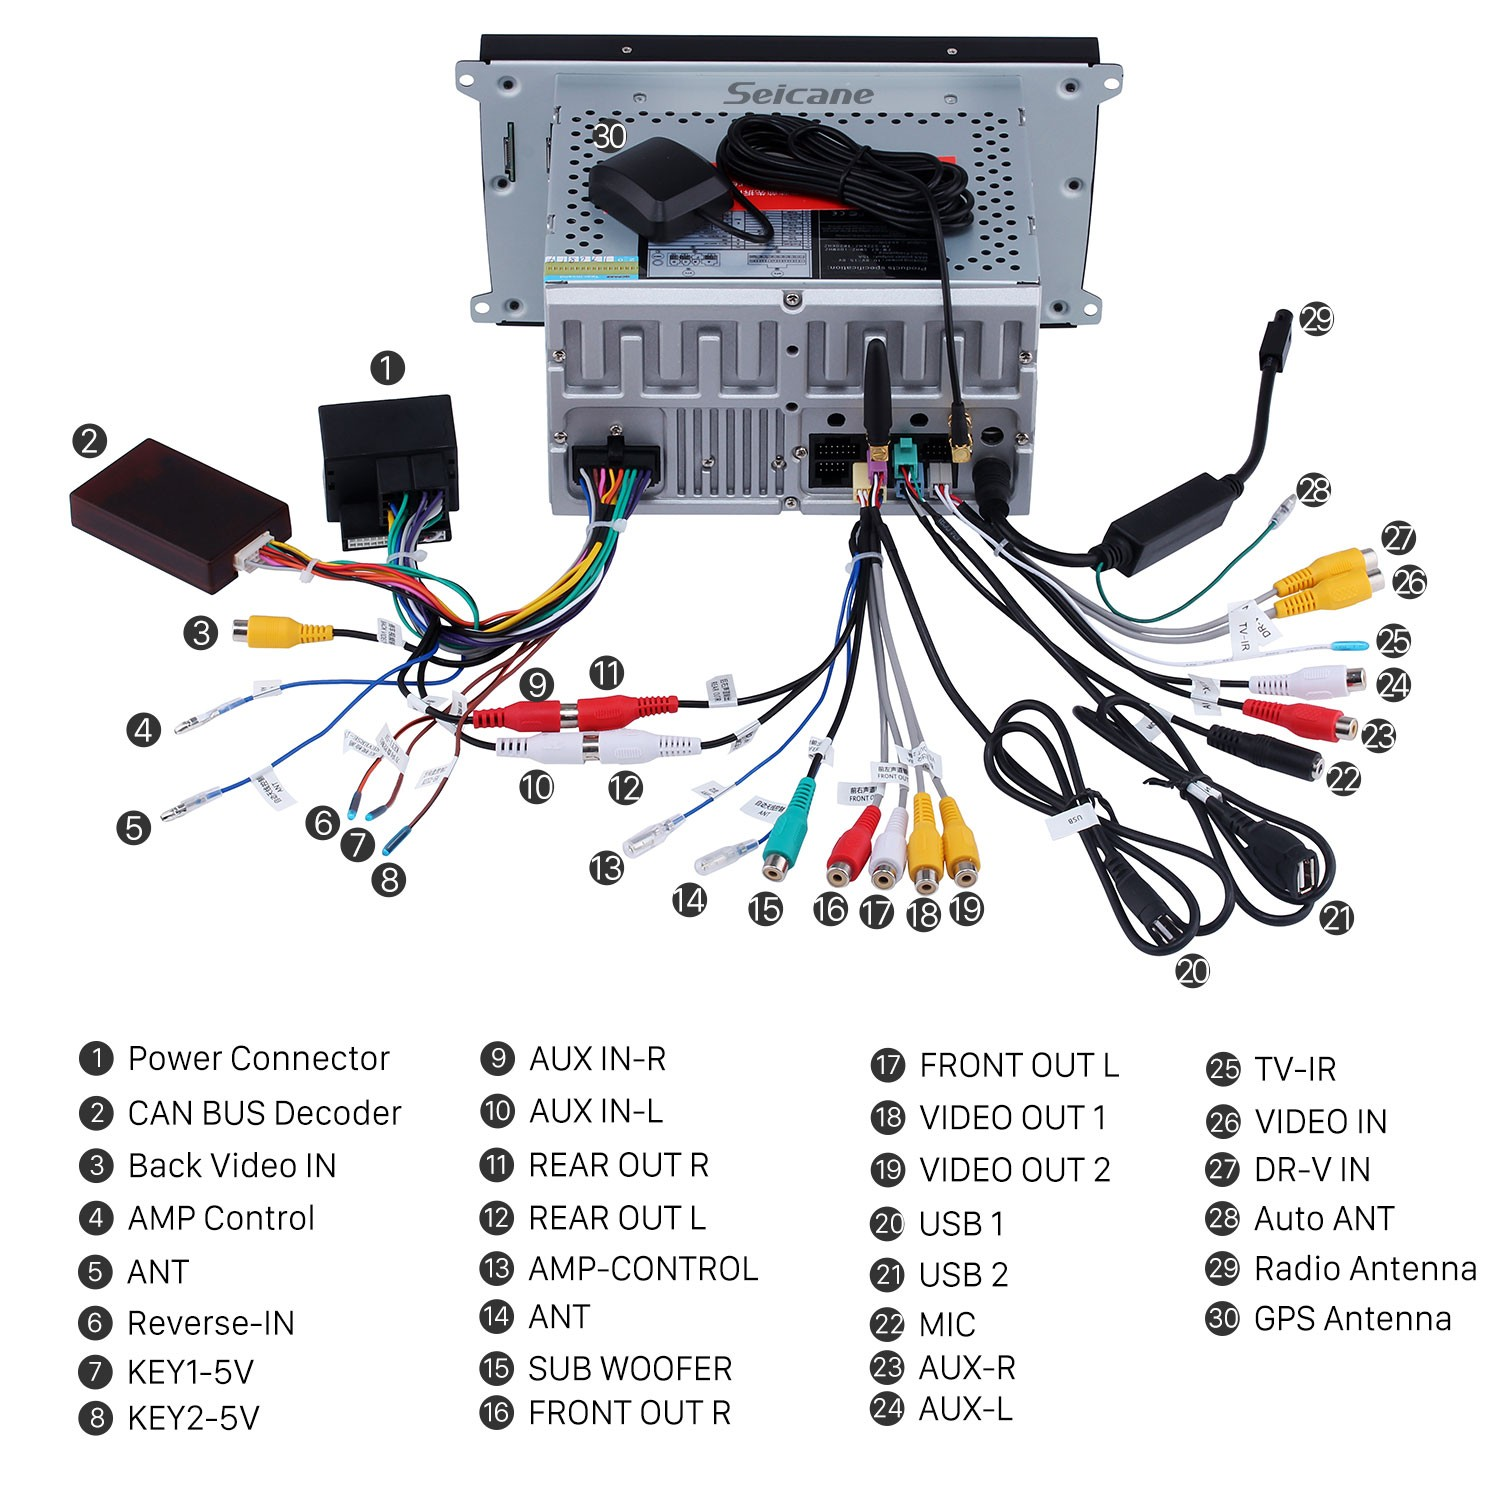 D Auto Dim Rear View Mirror Conversion Image in addition Hqdefault as well D Tranzit Blu Hf Install In A Tt Pcm E C C F D B D C Zpsnn R Wez together with Cayenne Radio Installation Instructions For Car Audio Of Porsche Cayenne Radio Wiring Diagram as well Hqdefault. on porsche cayenne wiring diagram